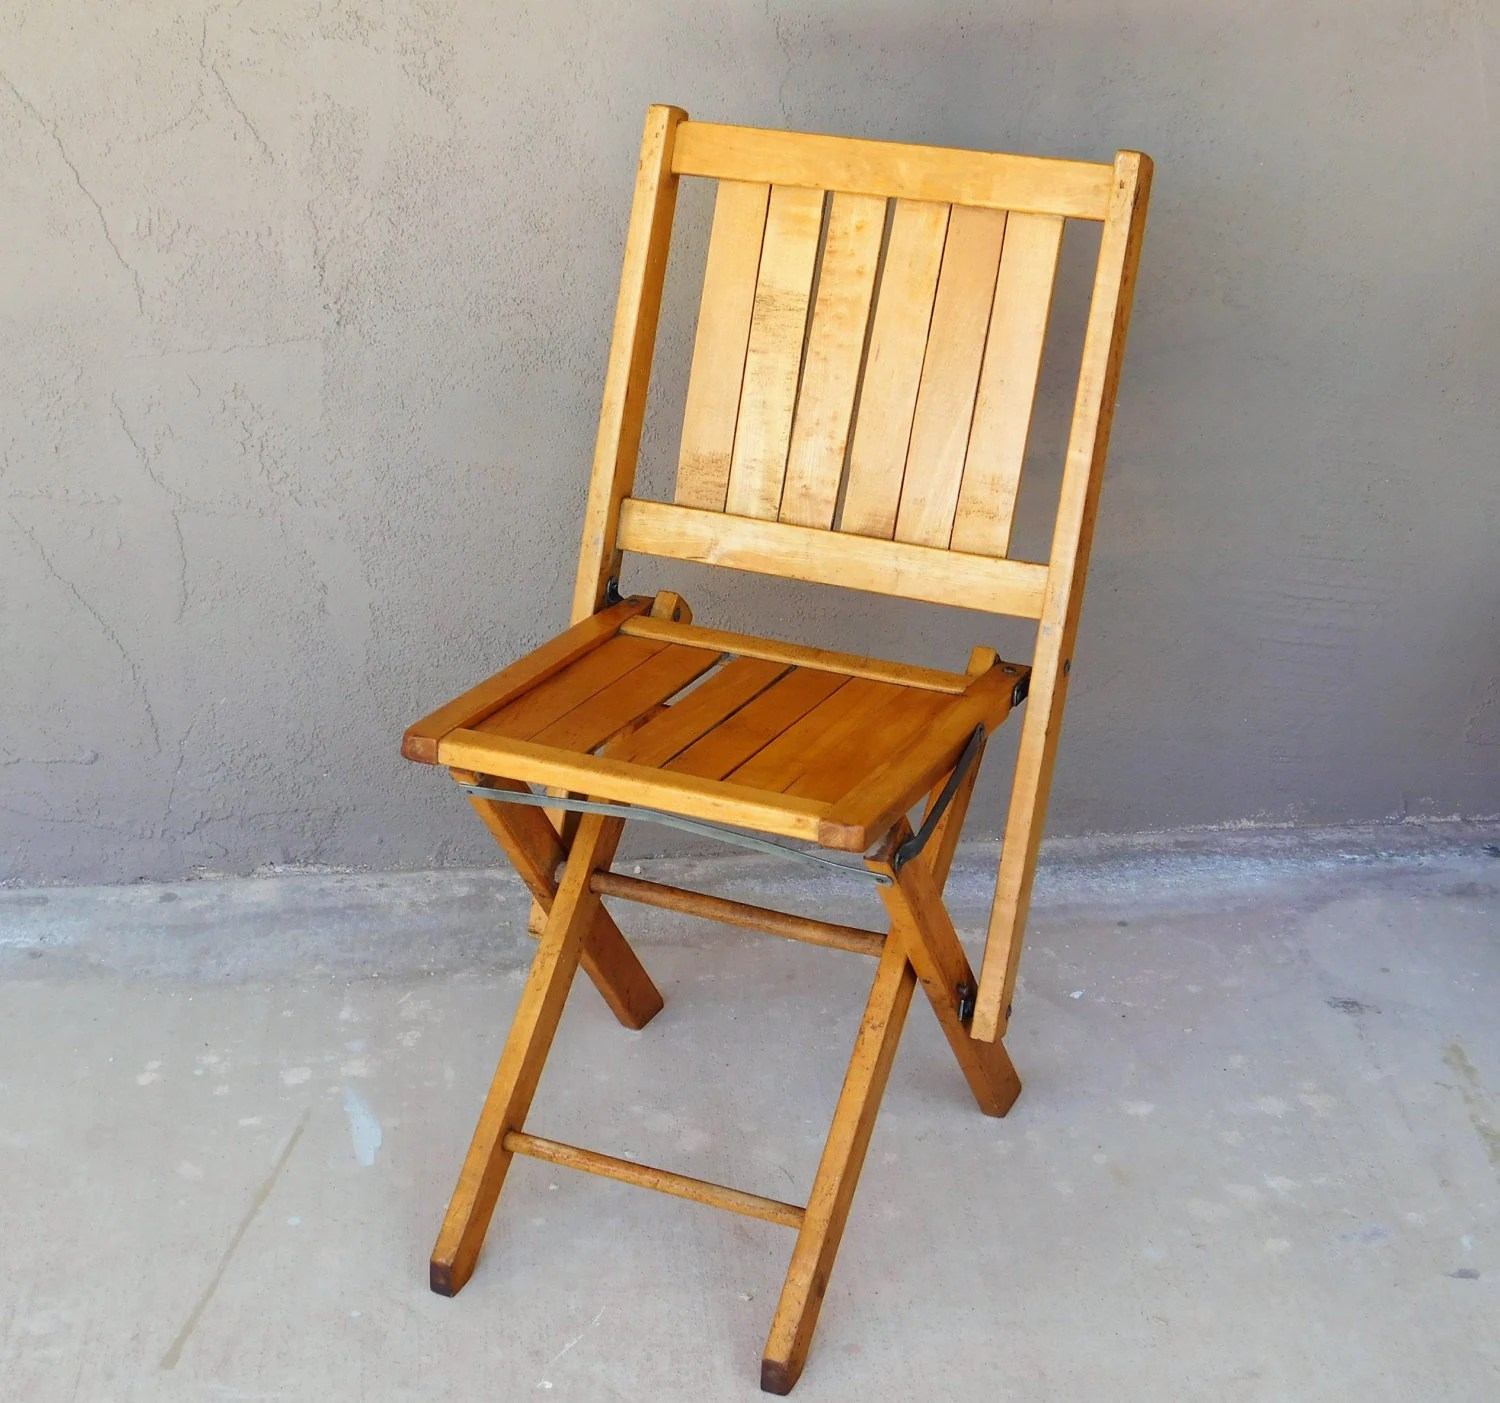 Nice Folding Chairs Vintage Wood Folding Chair Sturdy Nice Condition Urban